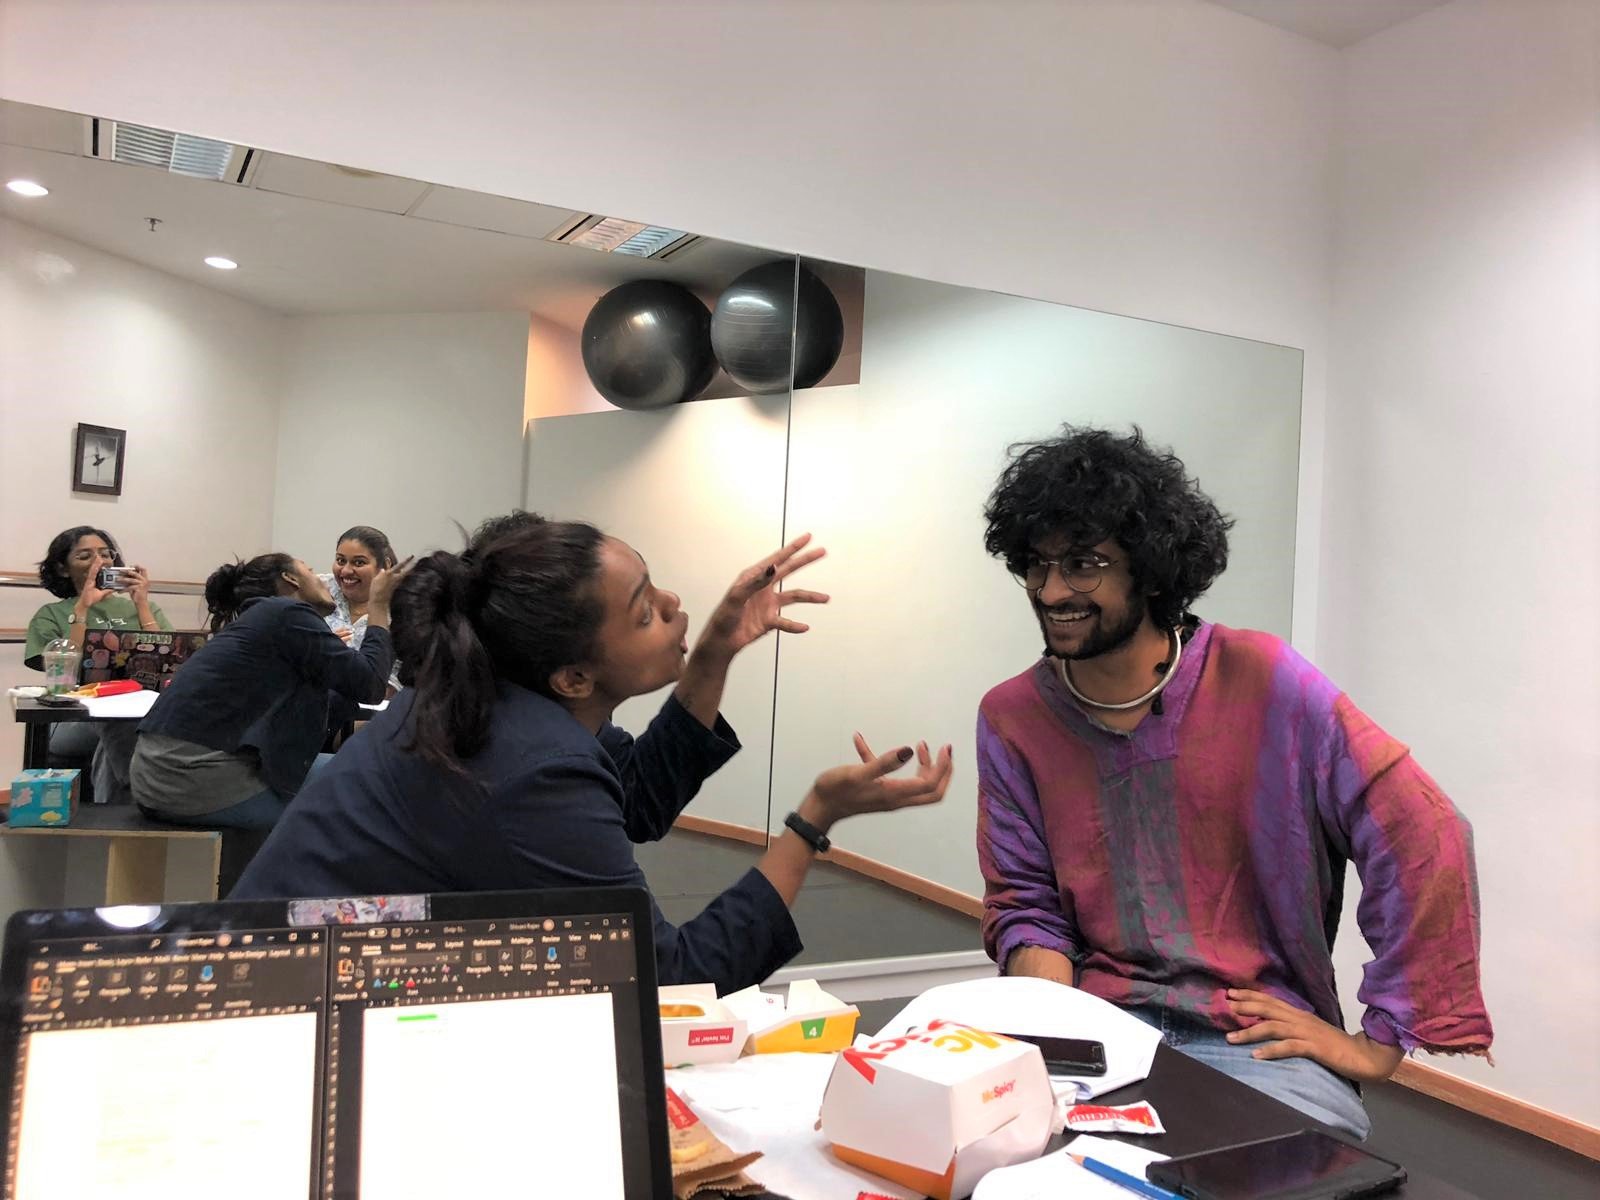 The cast of Between 5 Cows and the Deep Blue Sea, Sajini and Kewel Kartik, rehearsing for the dramatized reading. Photo Courtesy: Esplanade